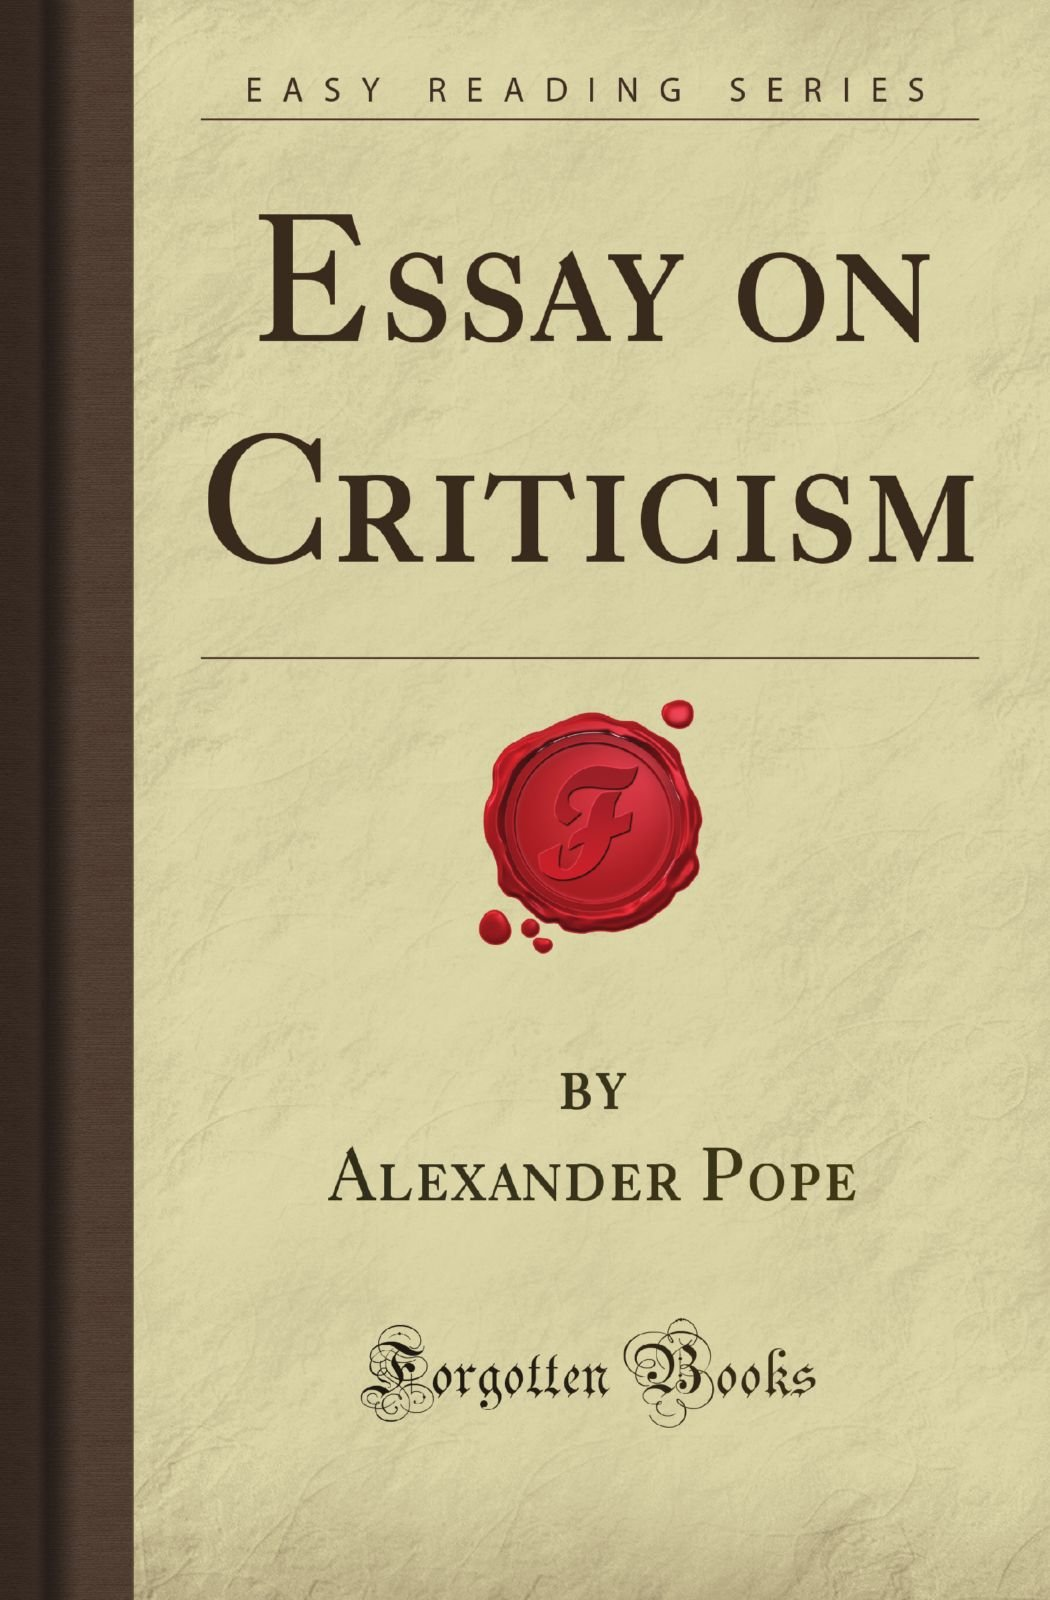 001 An Essay On Criticism Example Sensational Lines 233 To 415 Part 3 Analysis Pdf Full